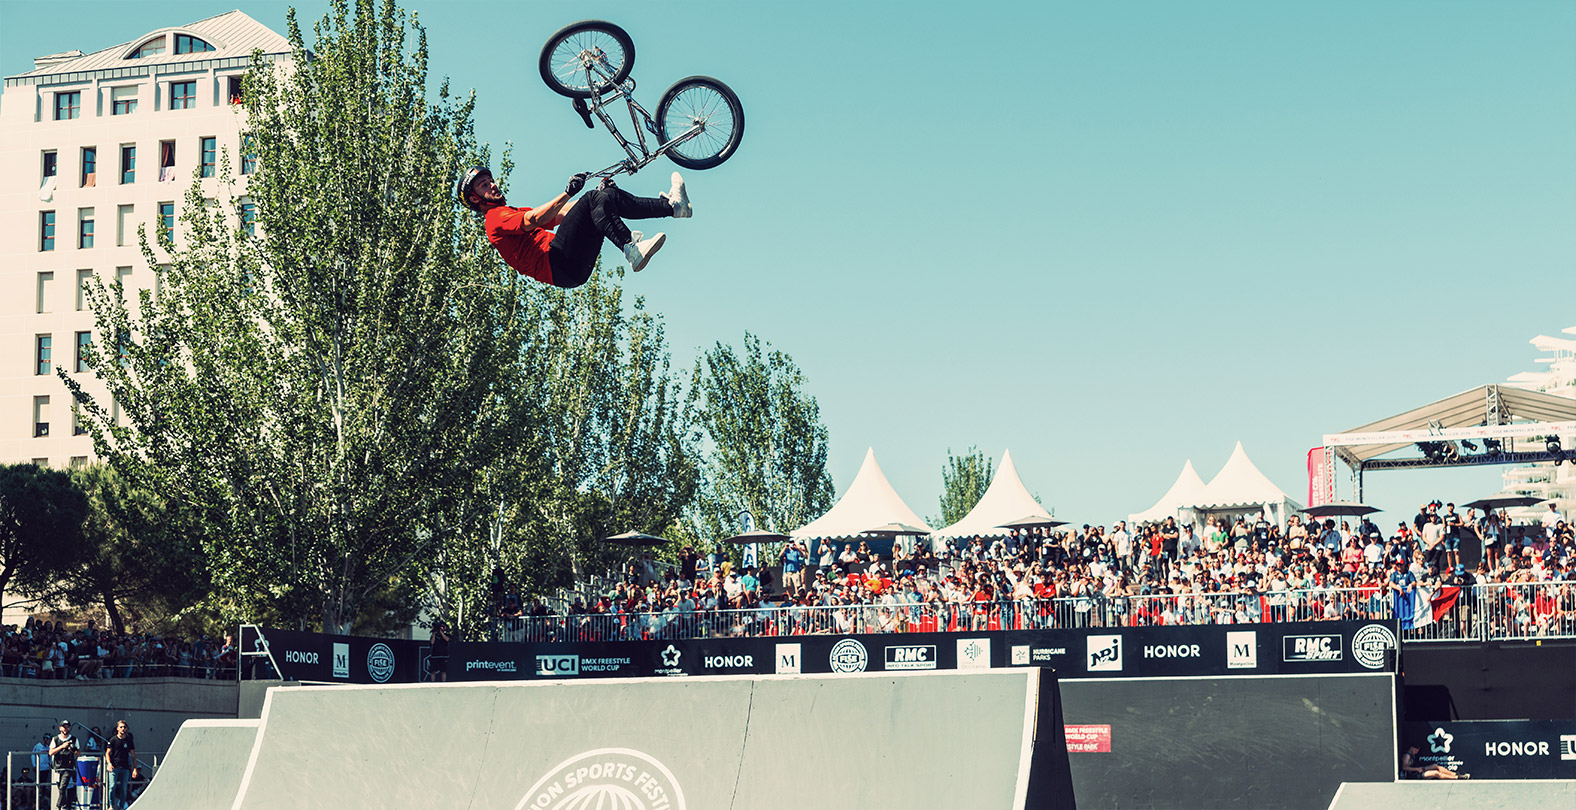 Anthony Jeanjean at Fise